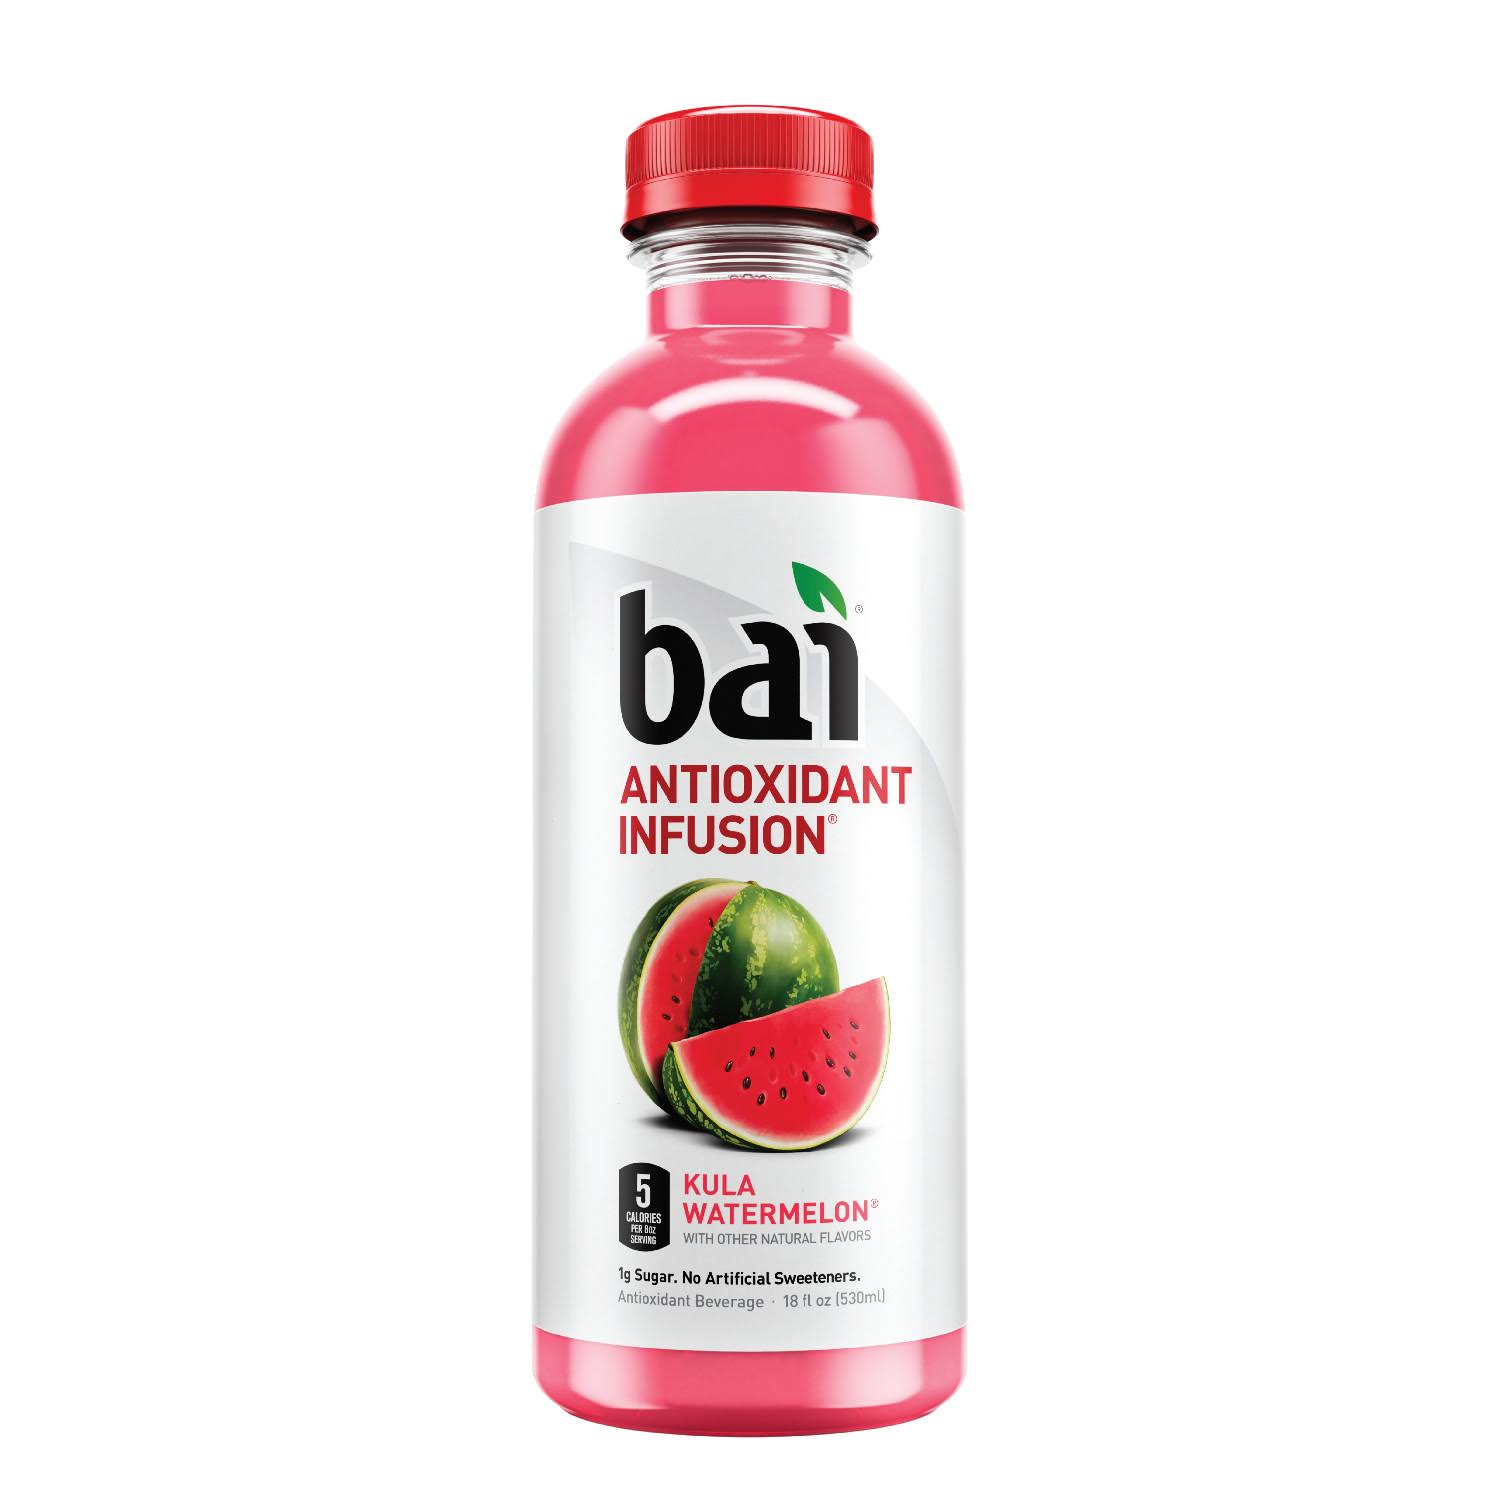 Bai Antioxidant Infusion, Kula Watermelon - 18 fl oz bottle